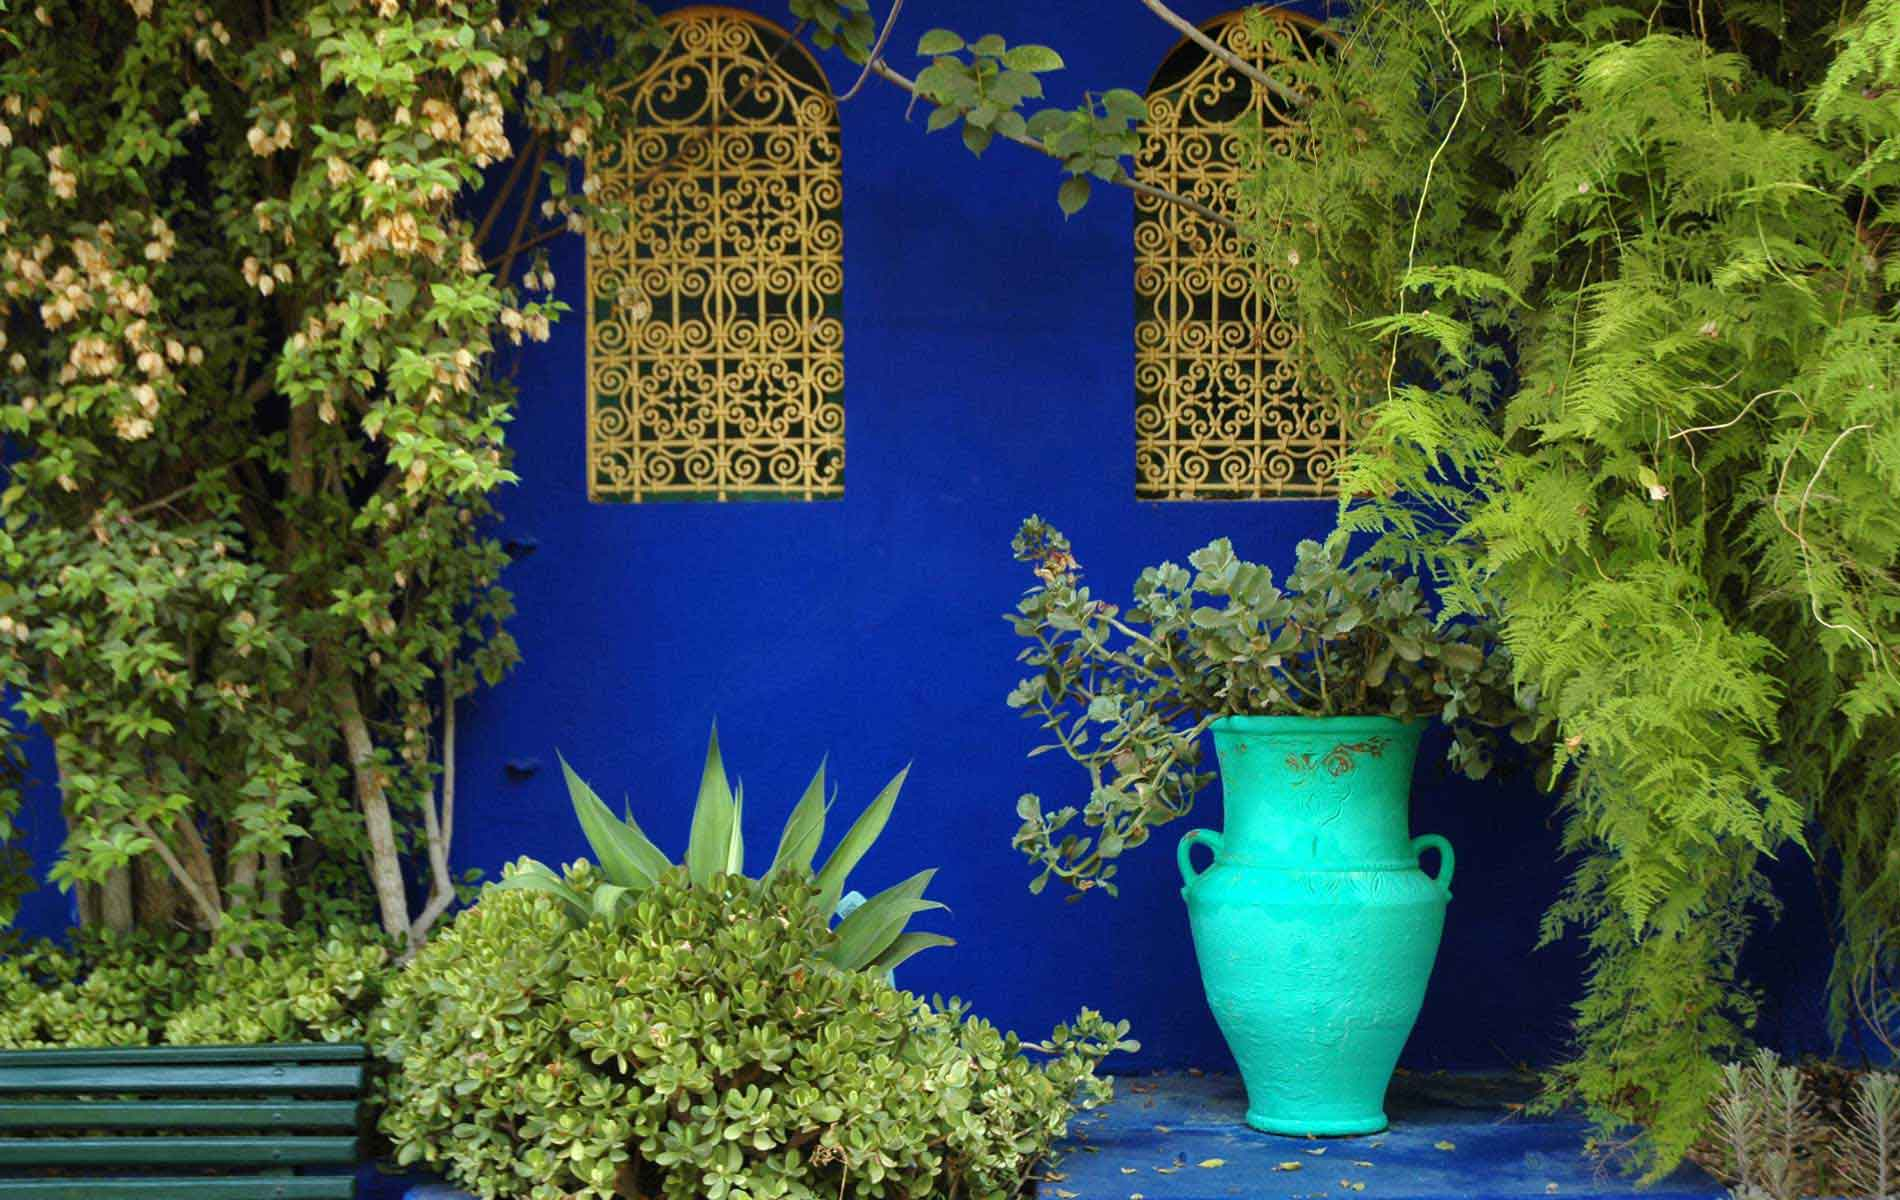 MOROCCO - Marrakech - Y.S.Laurent Blue House - © Graziano Villa